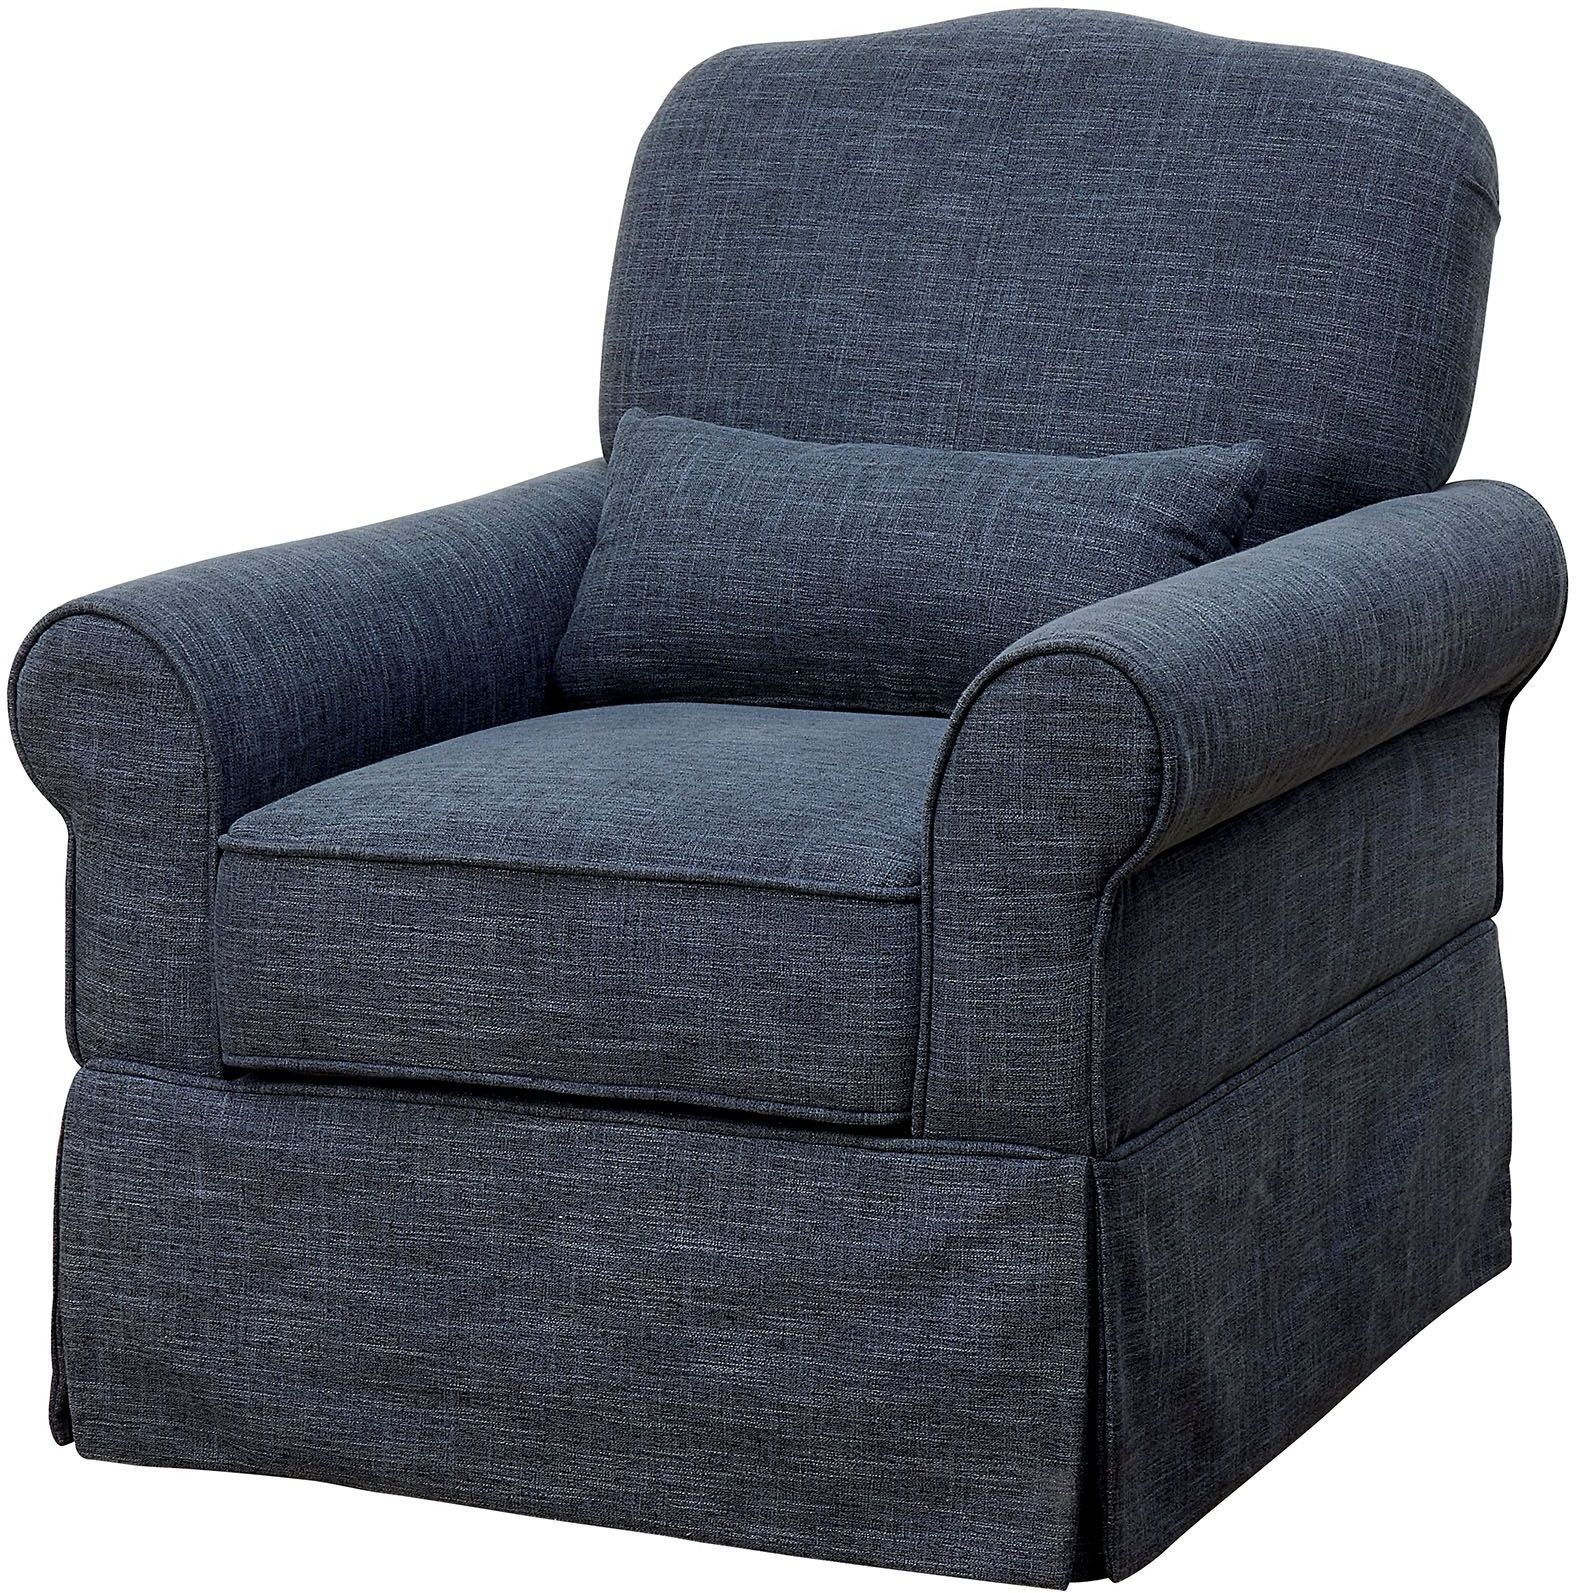 Lesly Dark Blue 360 Swivel Glider Reclining Chair from ...